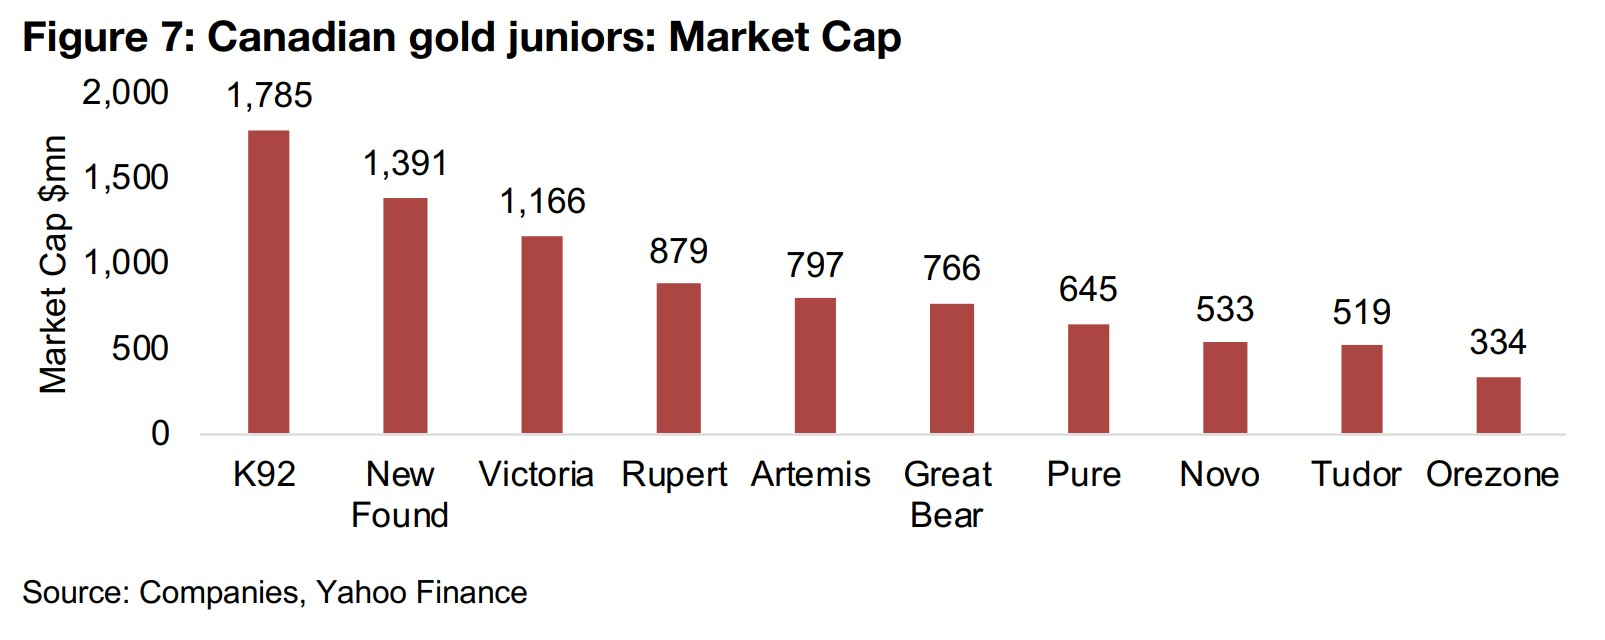 2) TSXV Juniors: Gold, silver and base metals